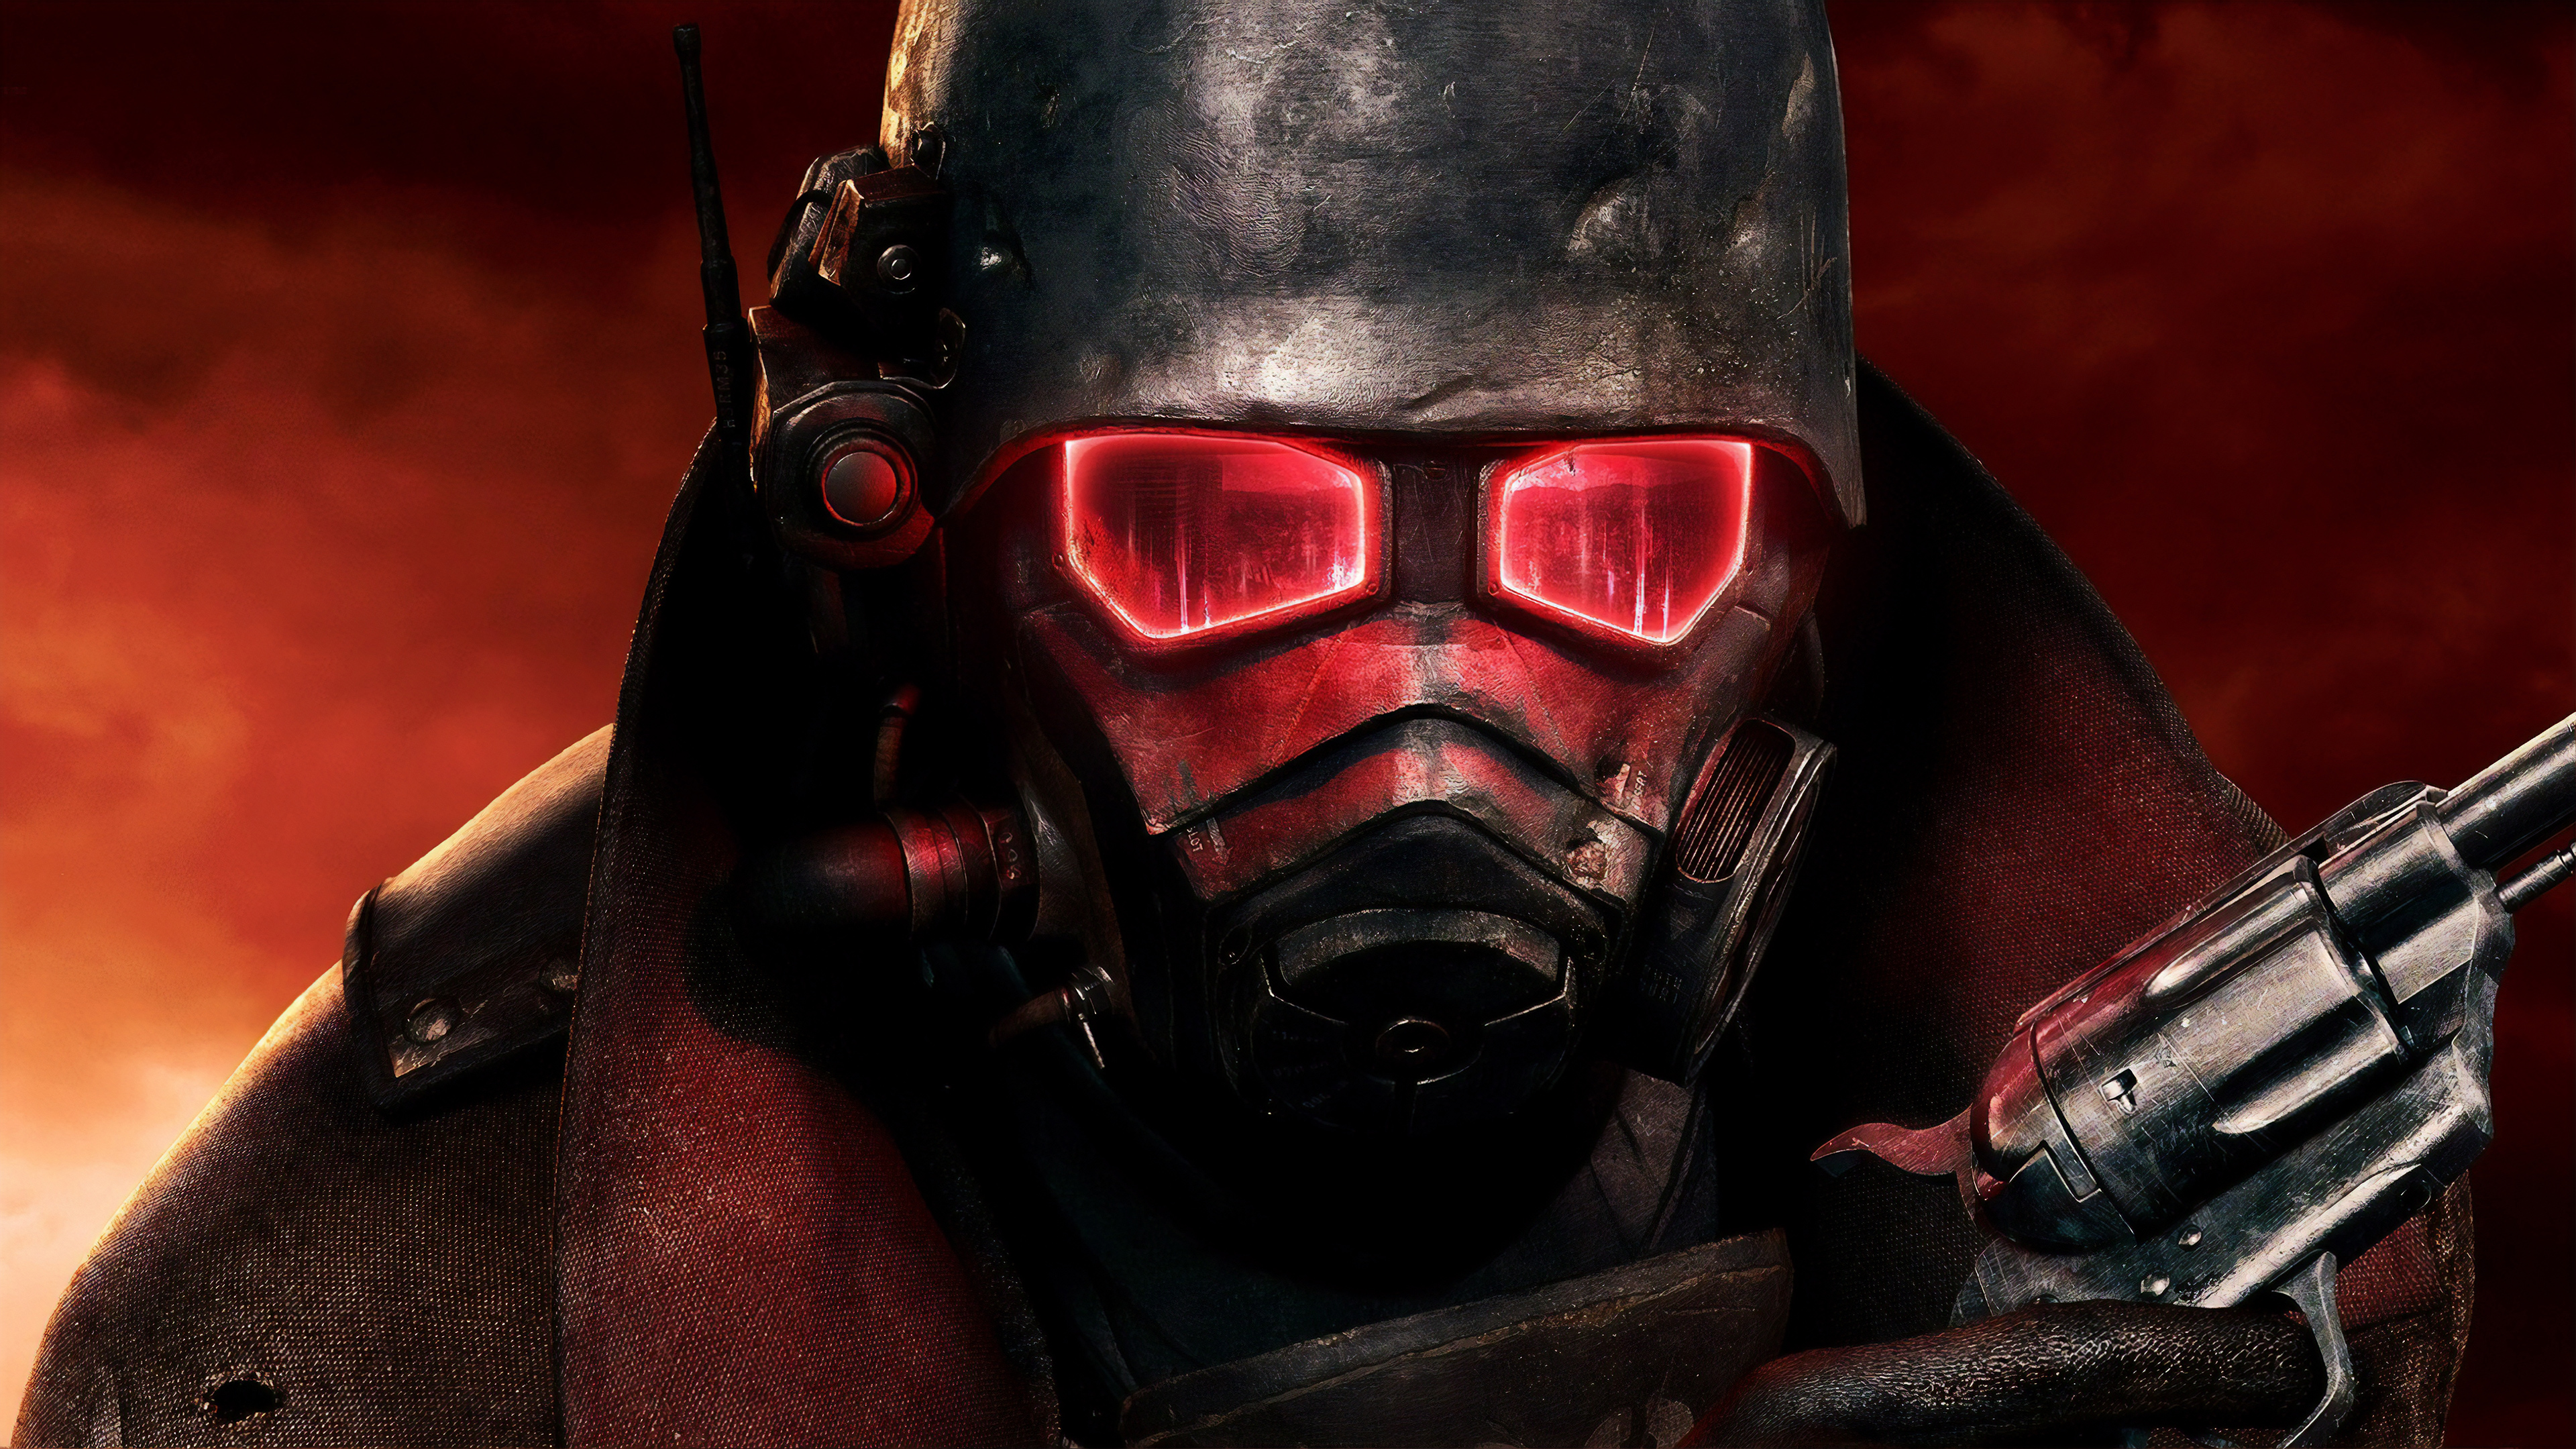 fallout new vegas 1565054395 - Fallout New Vegas - hd-wallpapers, games wallpapers, fallout wallpapers, fallout new vegas wallpapers, 4k-wallpapers